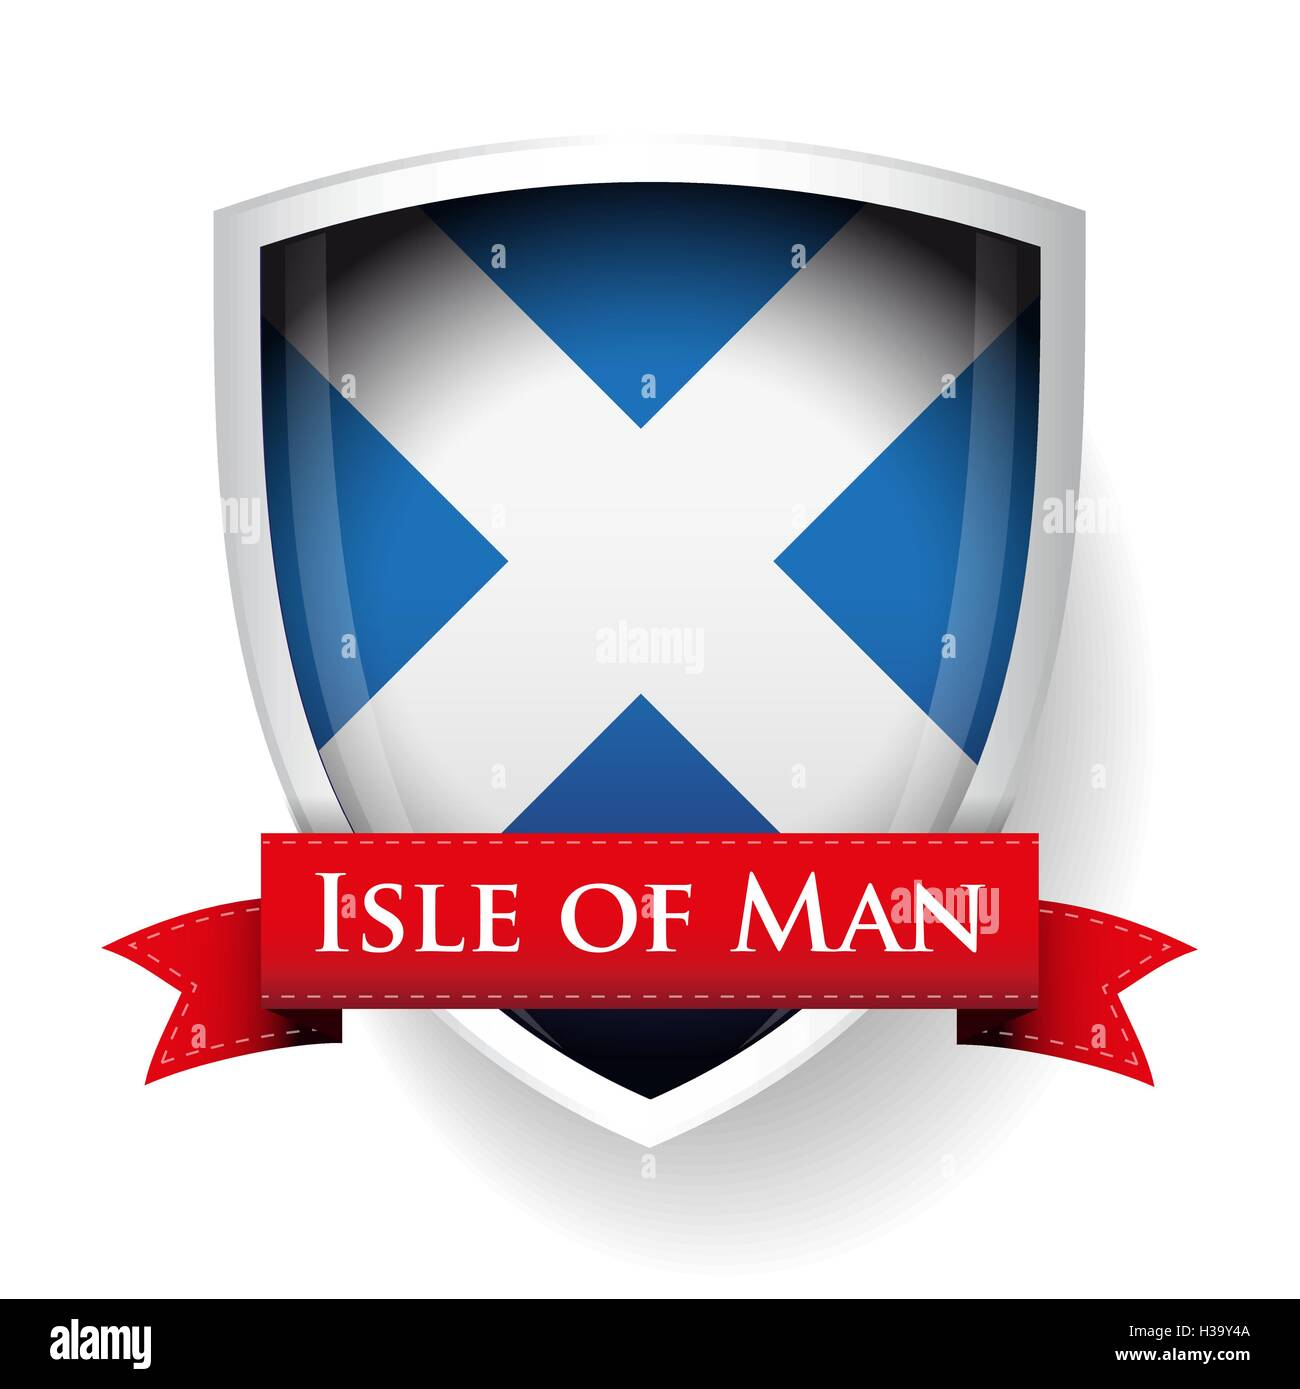 Scotland Flag with Isle of Man sign - Stock Image